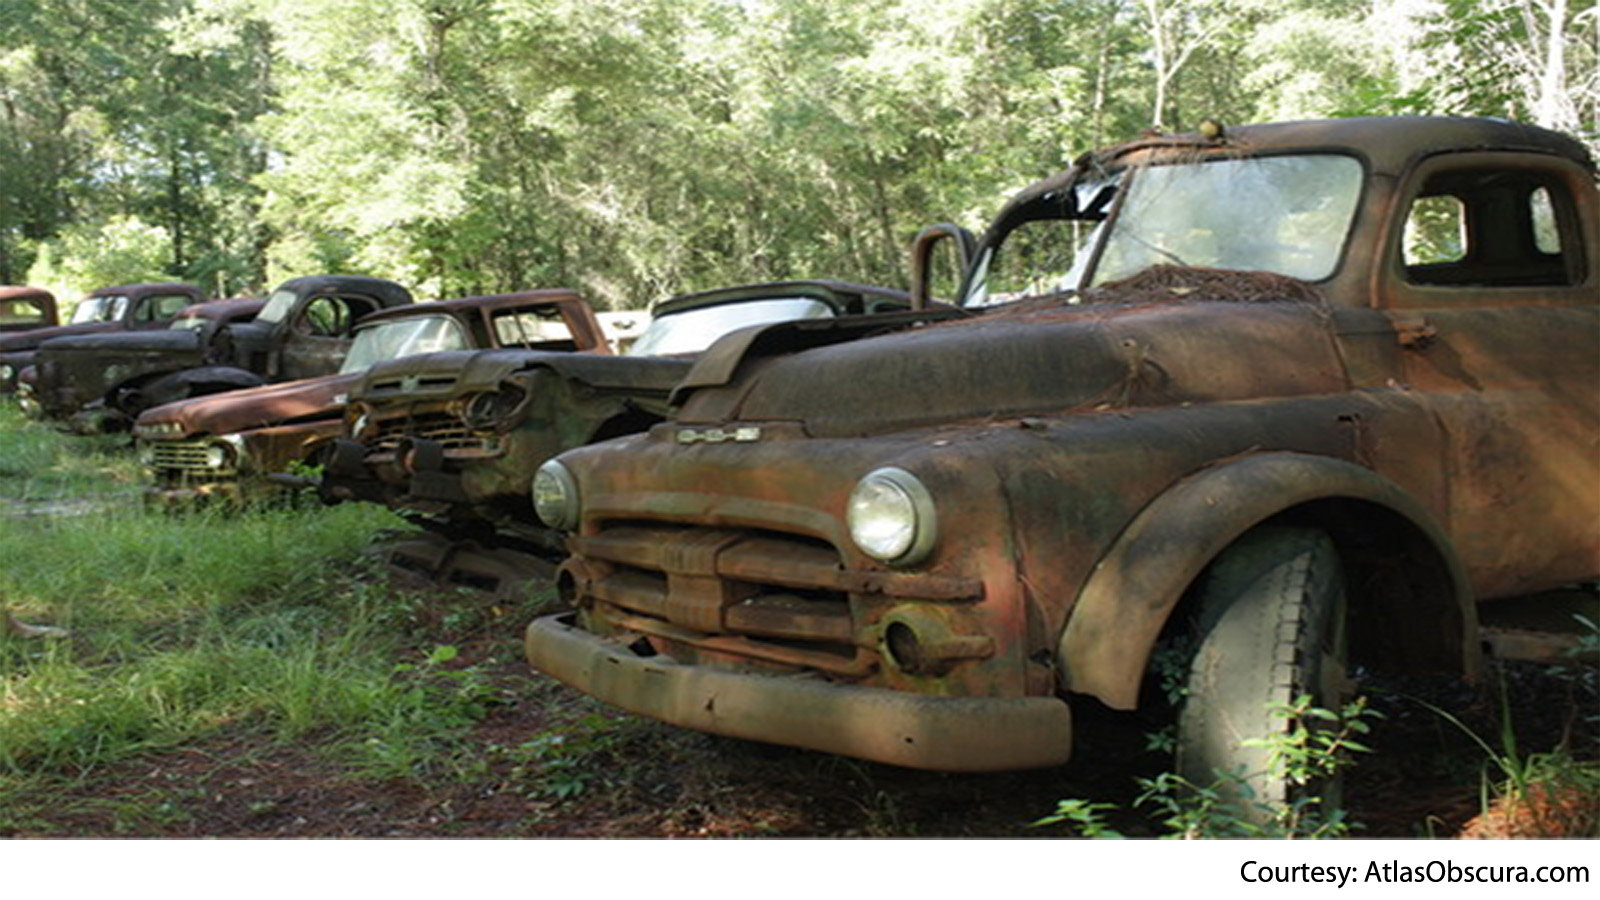 Finding Art in Rustic Ford Trucks